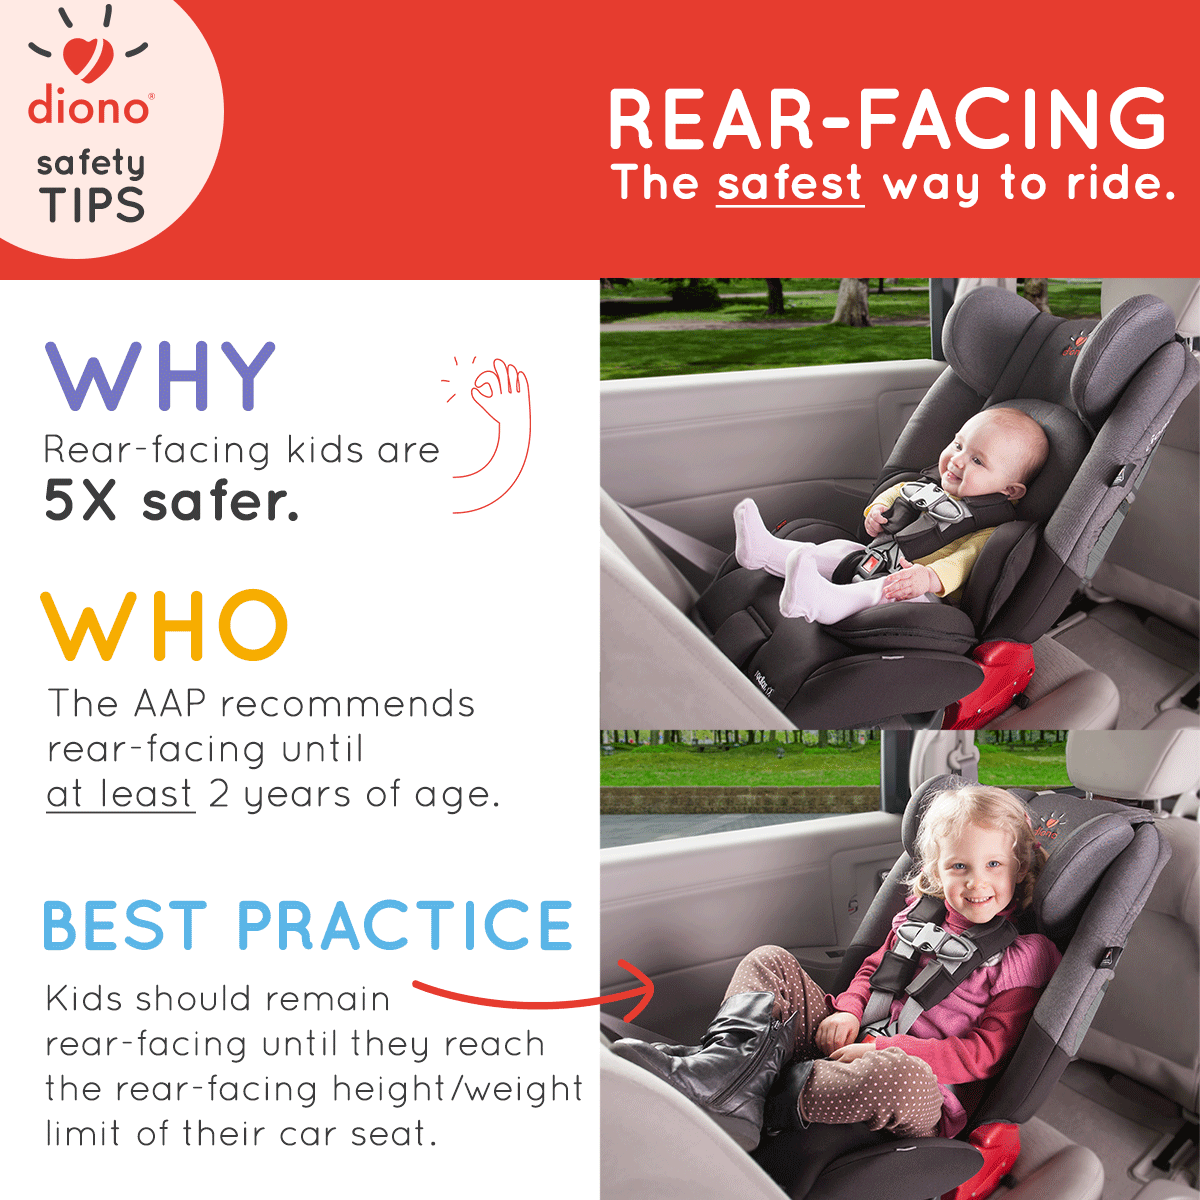 Rear-facing car seats offer maximum protection for your child's head